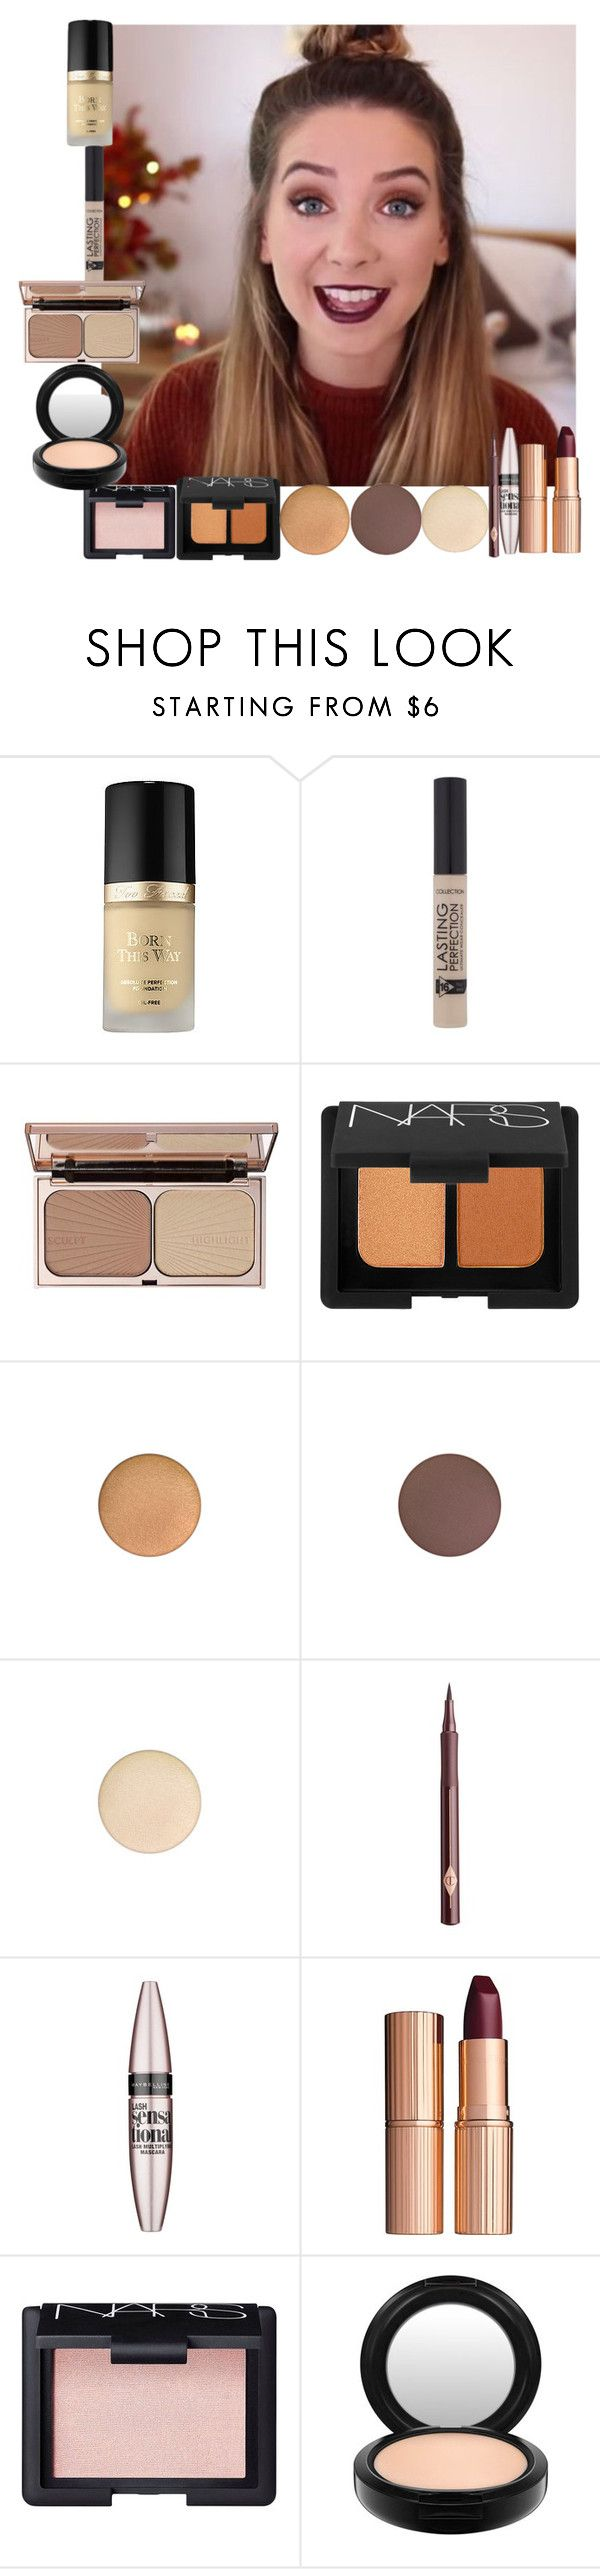 """Zoella Autumn Makeup Look"" by lovesammi98 ❤ liked on Polyvore featuring beleza, Too Faced Cosmetics, Charlotte Tilbury, NARS Cosmetics, MAC Cosmetics e Maybelline"